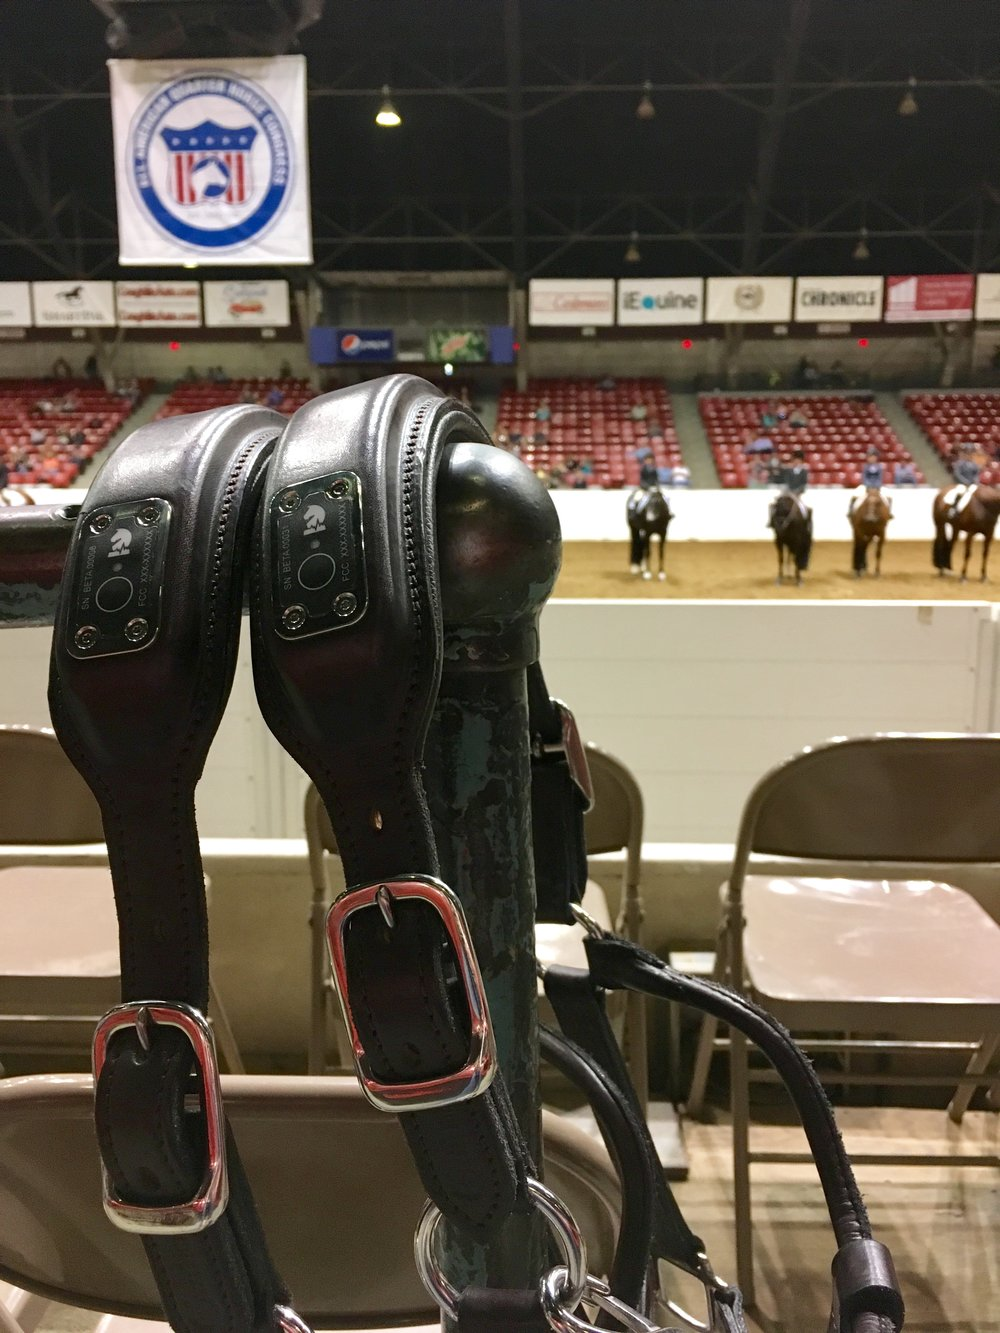 A great shot of our NIGHTWATCH® halters at the All American Quarter Horse Congress in Columbus, Ohio.